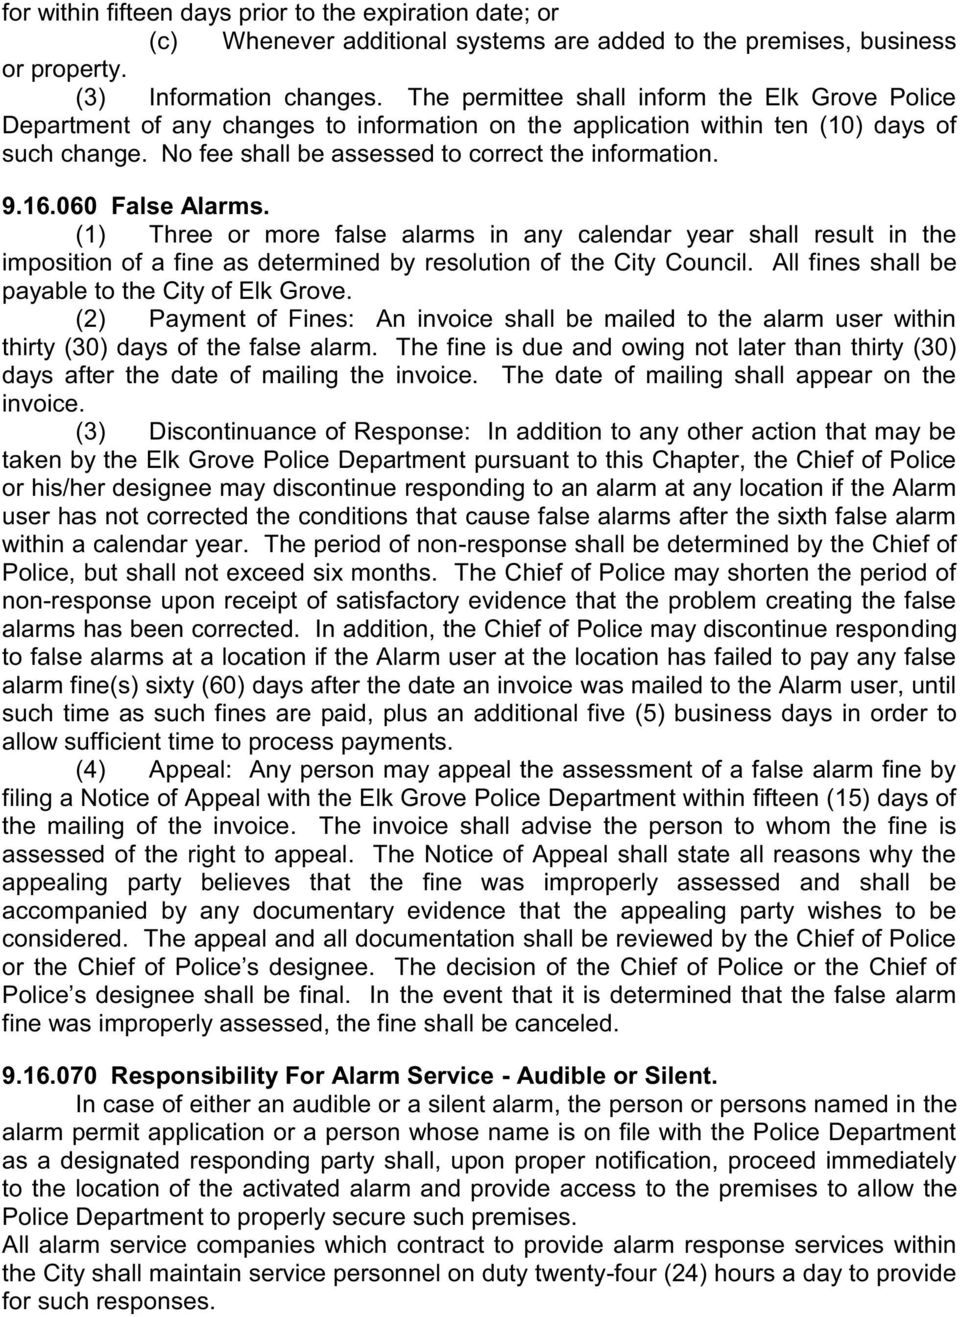 16.060 False Alarms. (1) Three or more false alarms in any calendar year shall result in the imposition of a fine as determined by resolution of the City Council.